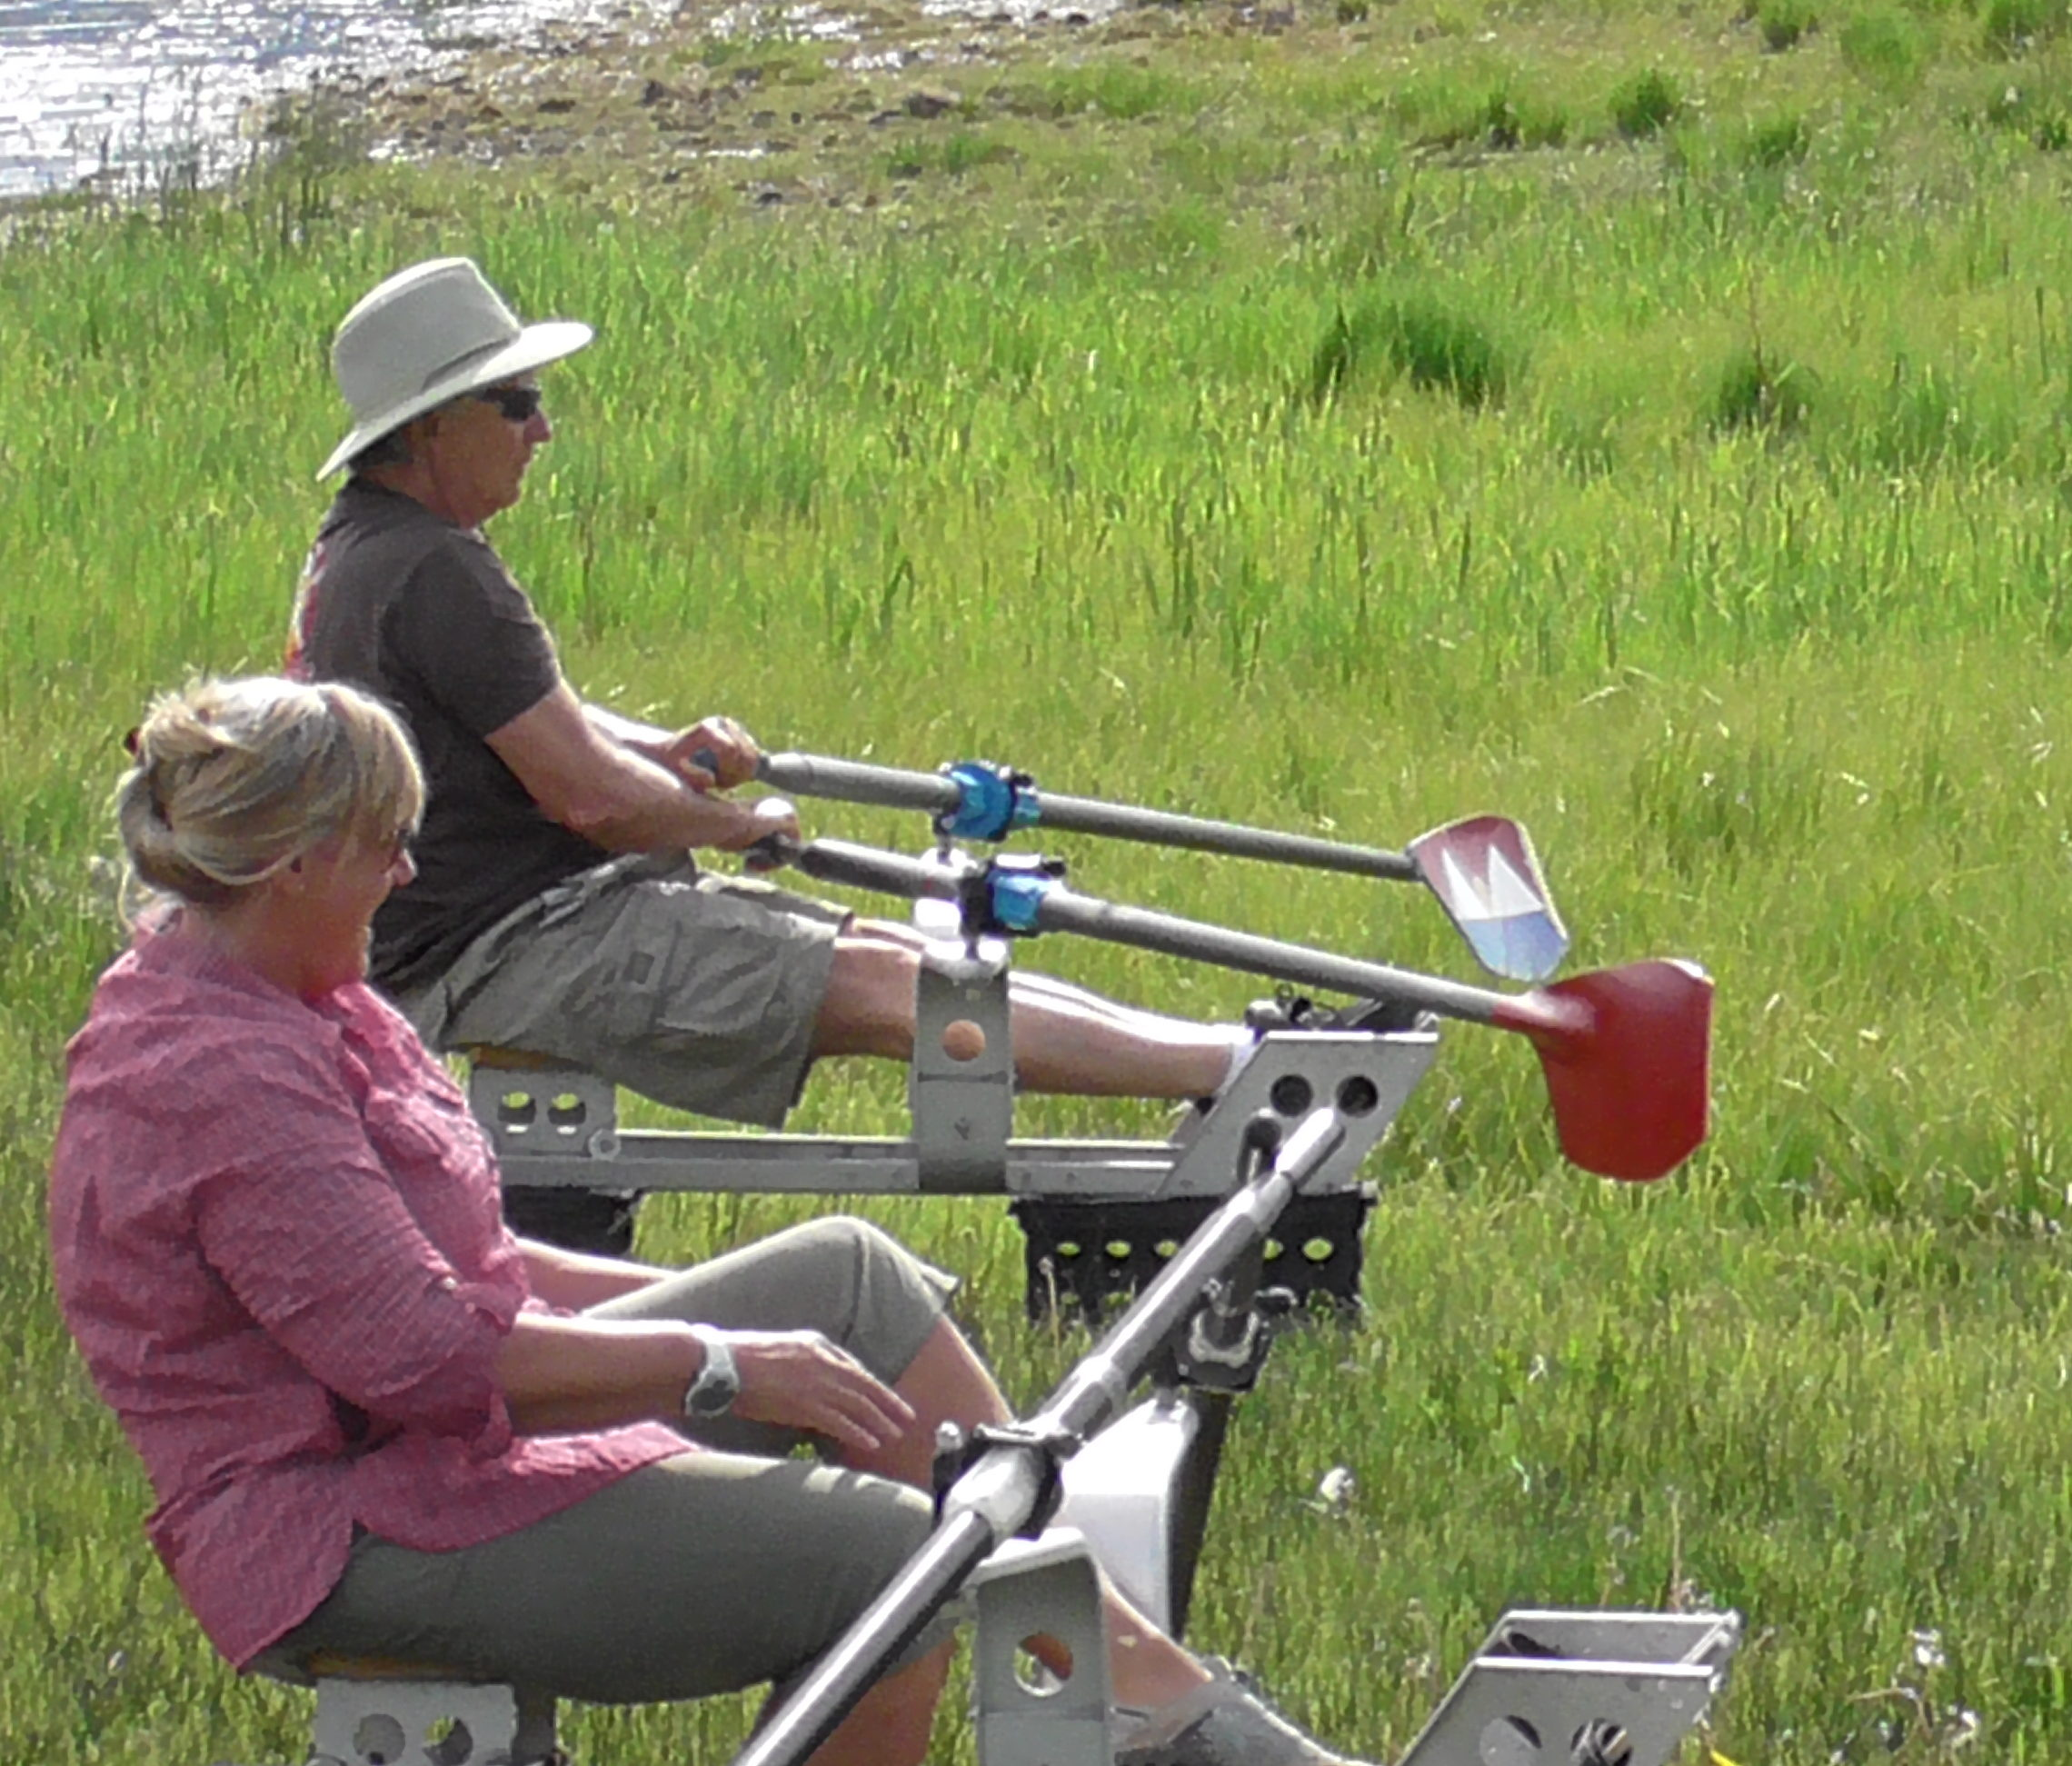 Land rowing simulator